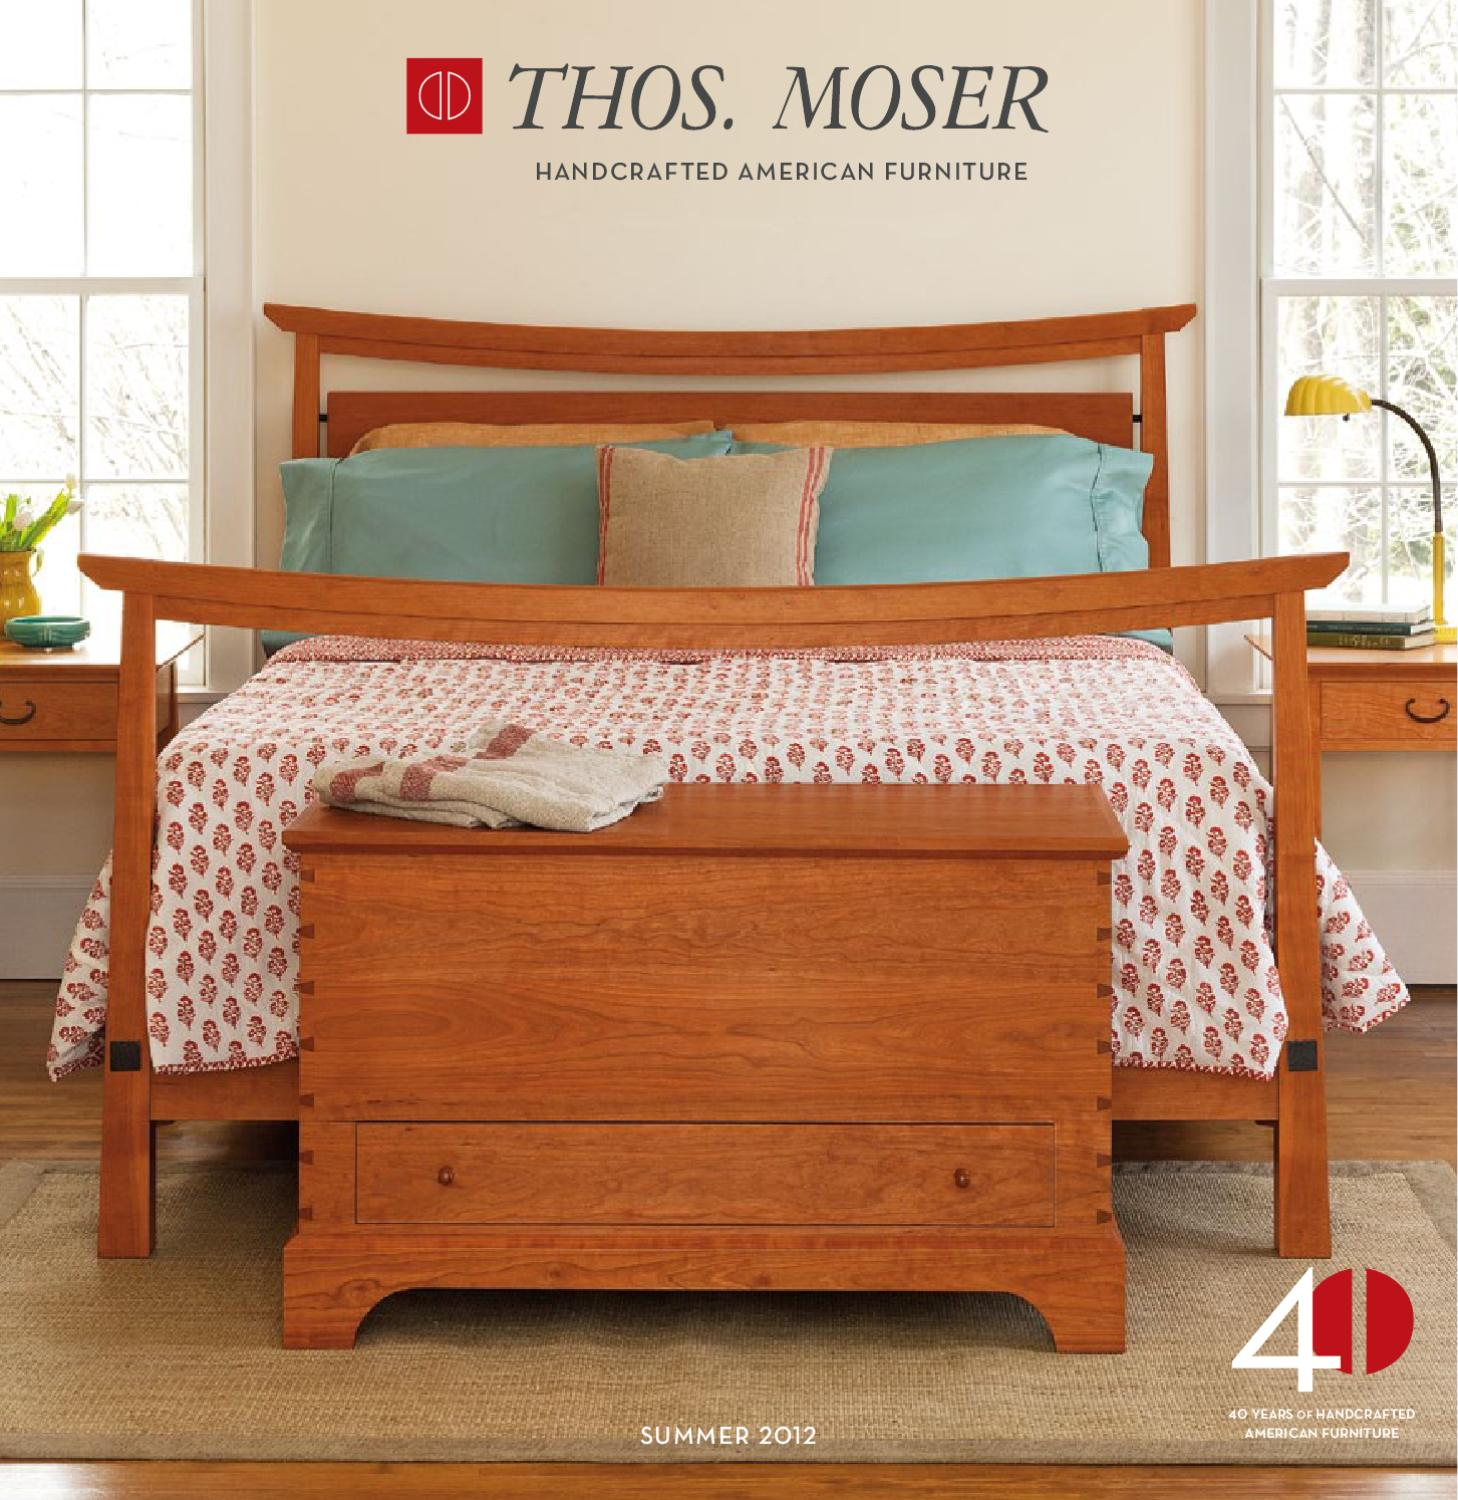 Thos. Moser JUNE 2012 Catalog By Thos. Moser Handmade